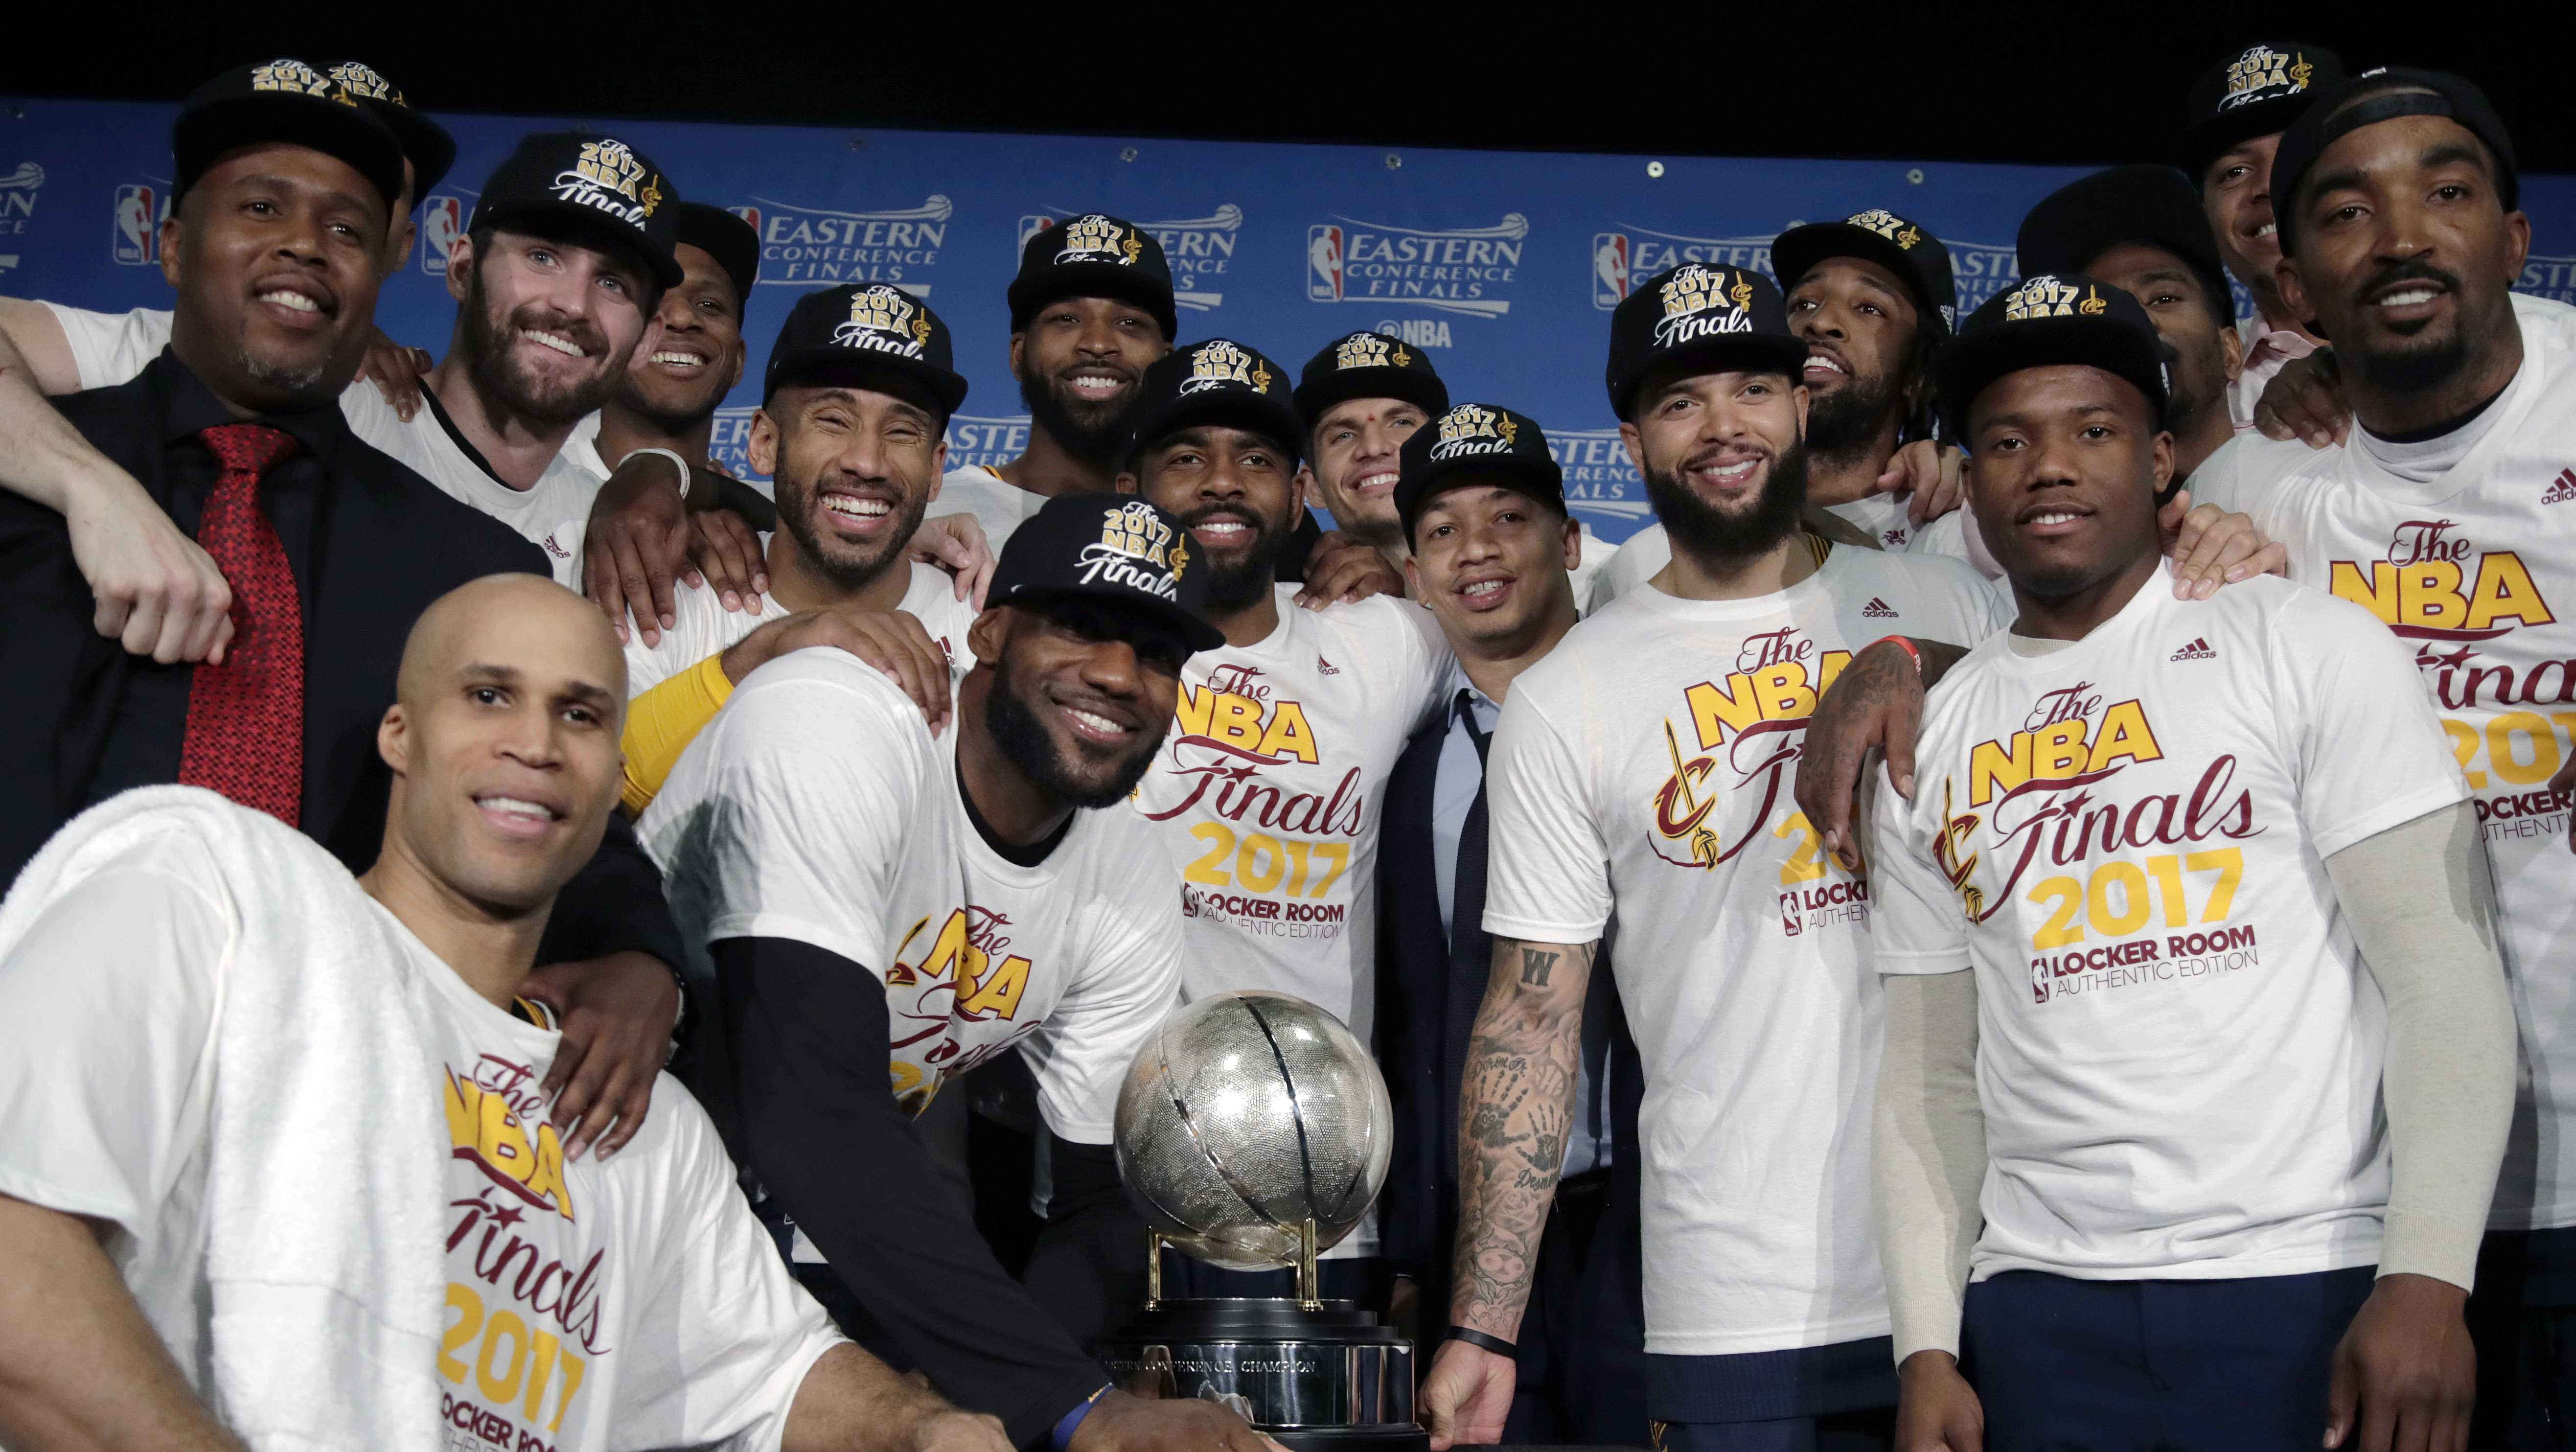 The Cleveland Cavaliers pose with their trophy after winning Game 5 of the NBA basketball Eastern Conference finals against the Boston Celtics 135-102, on Thursday, May 25, 2017, in Boston.